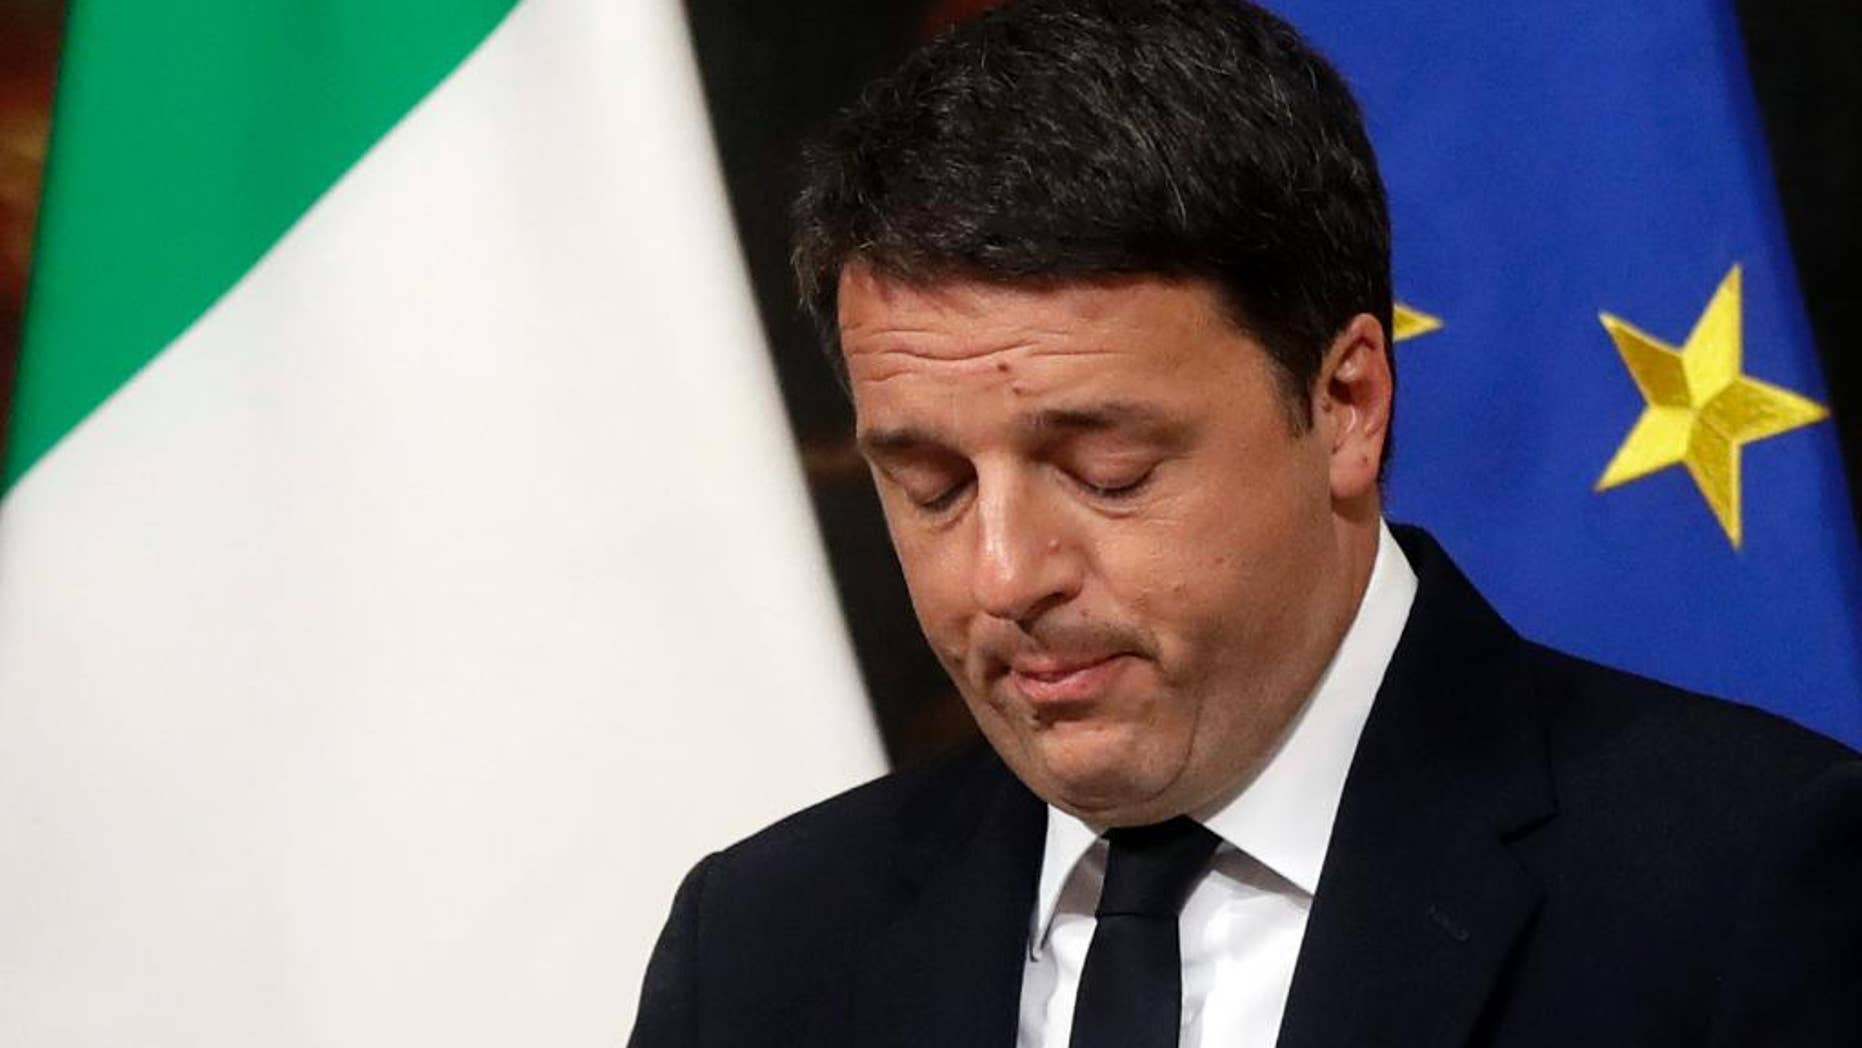 Italian Premier Matteo Renzi speaks during a press conference at the premier's office Chigi Palace in Rome, early Monday, Dec. 5, 2016. Renzi acknowledged defeat in a constitutional referendum and announced he will resign on Monday. Italians voted Sunday in a referendum on constitutional reforms that Premier Matteo Renzi has staked his political future on. (AP Photo/Gregorio Borgia)